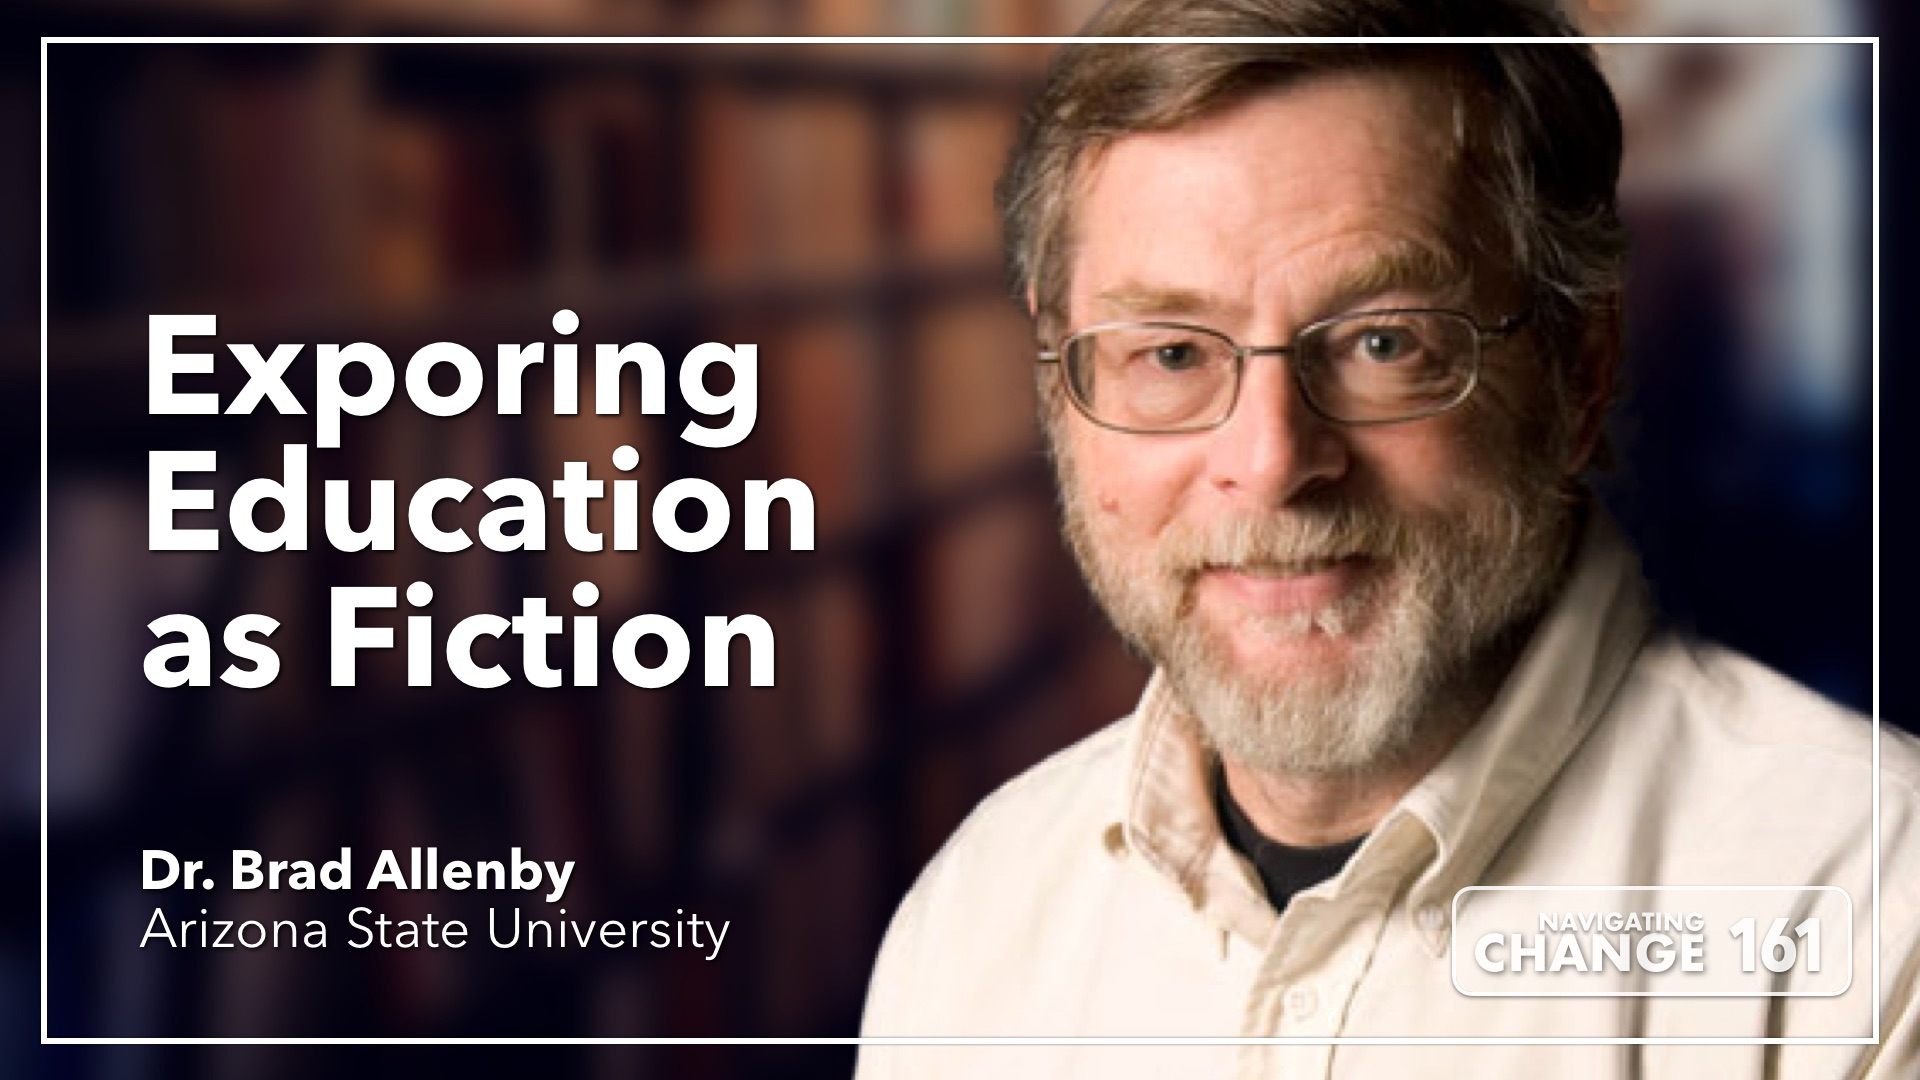 Listen to Brad Allenby on Navigating Change The Education Podcast